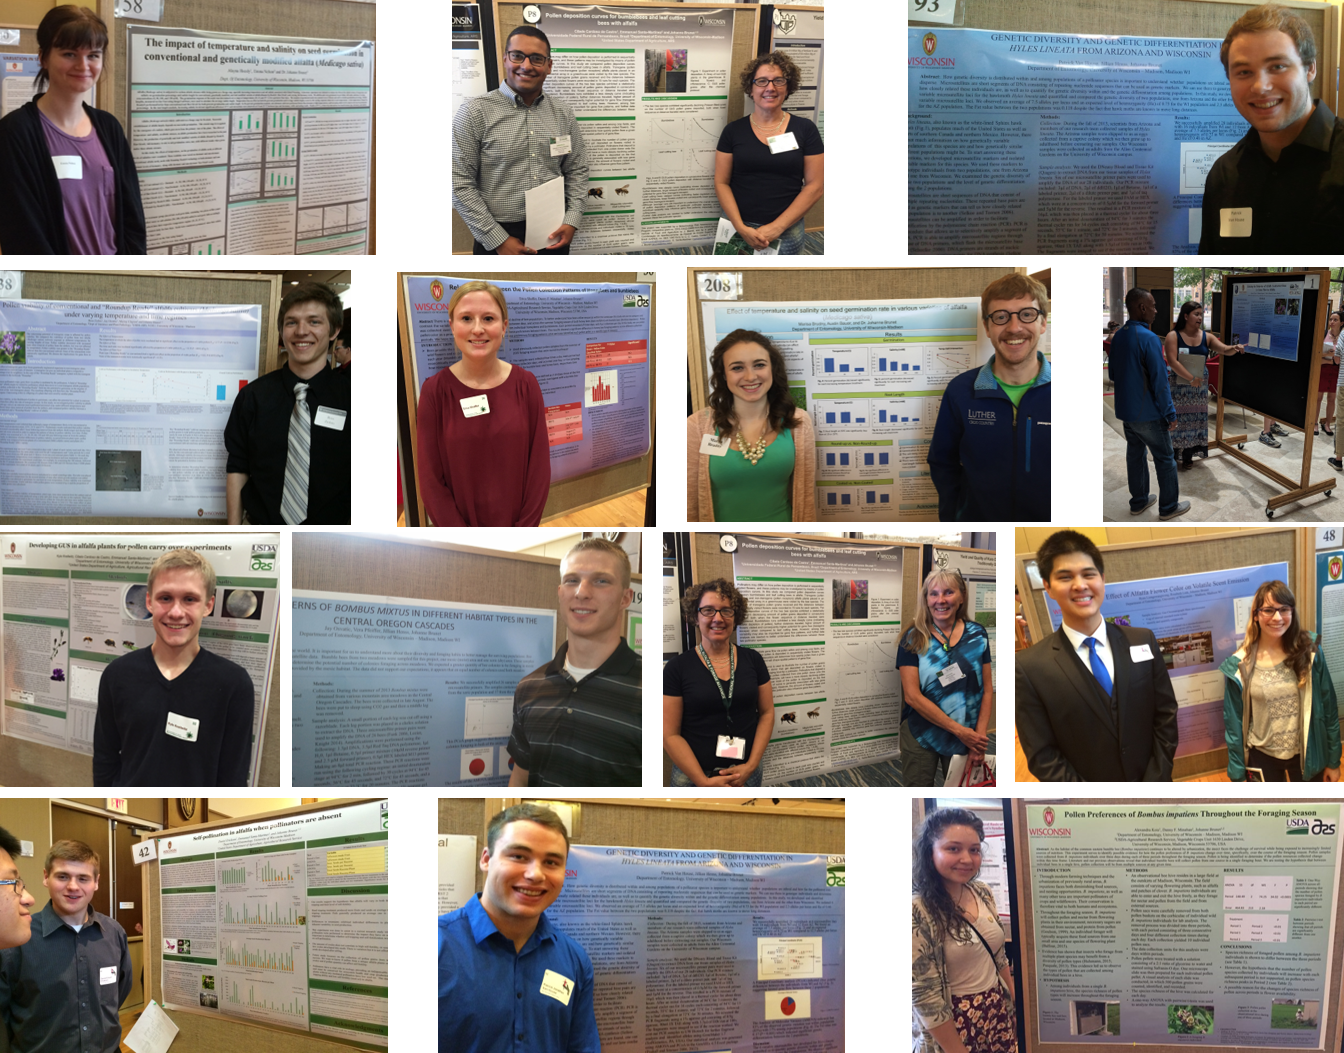 /ARSUserFiles/34905/Brunet Lab Photos/Poster Photo Collage.png